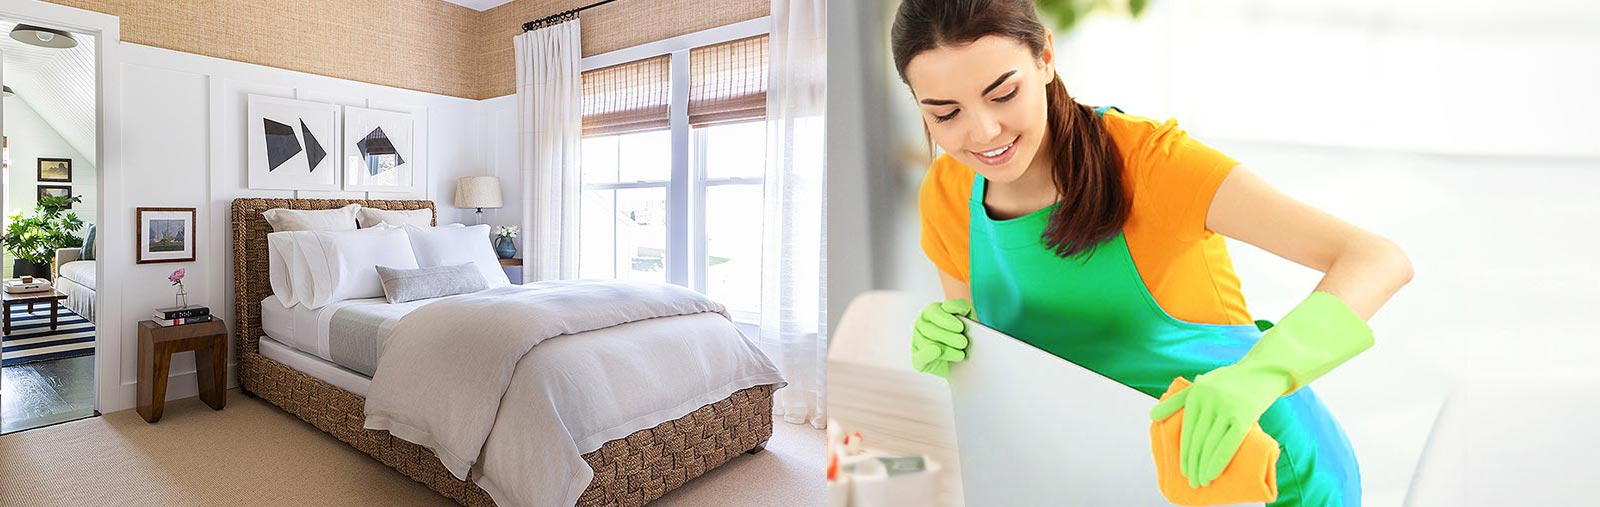 House Cleaning Towers Cleaning Santa Barbara Cleaning